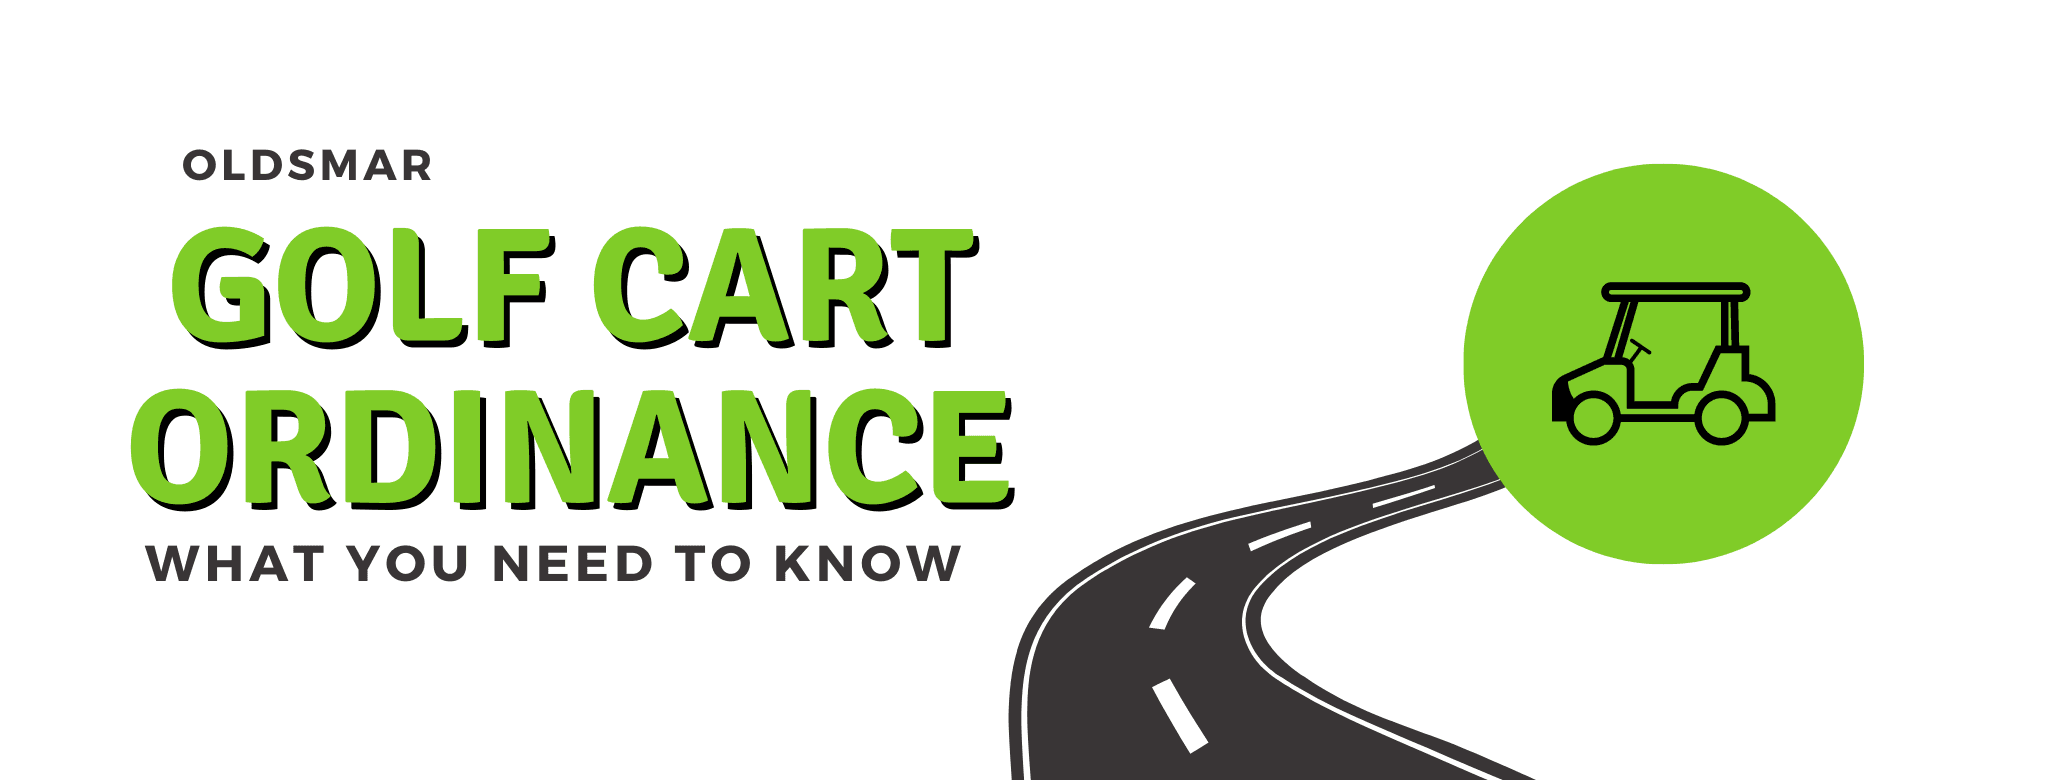 oldsmar golf cart ordinance, what you need to know